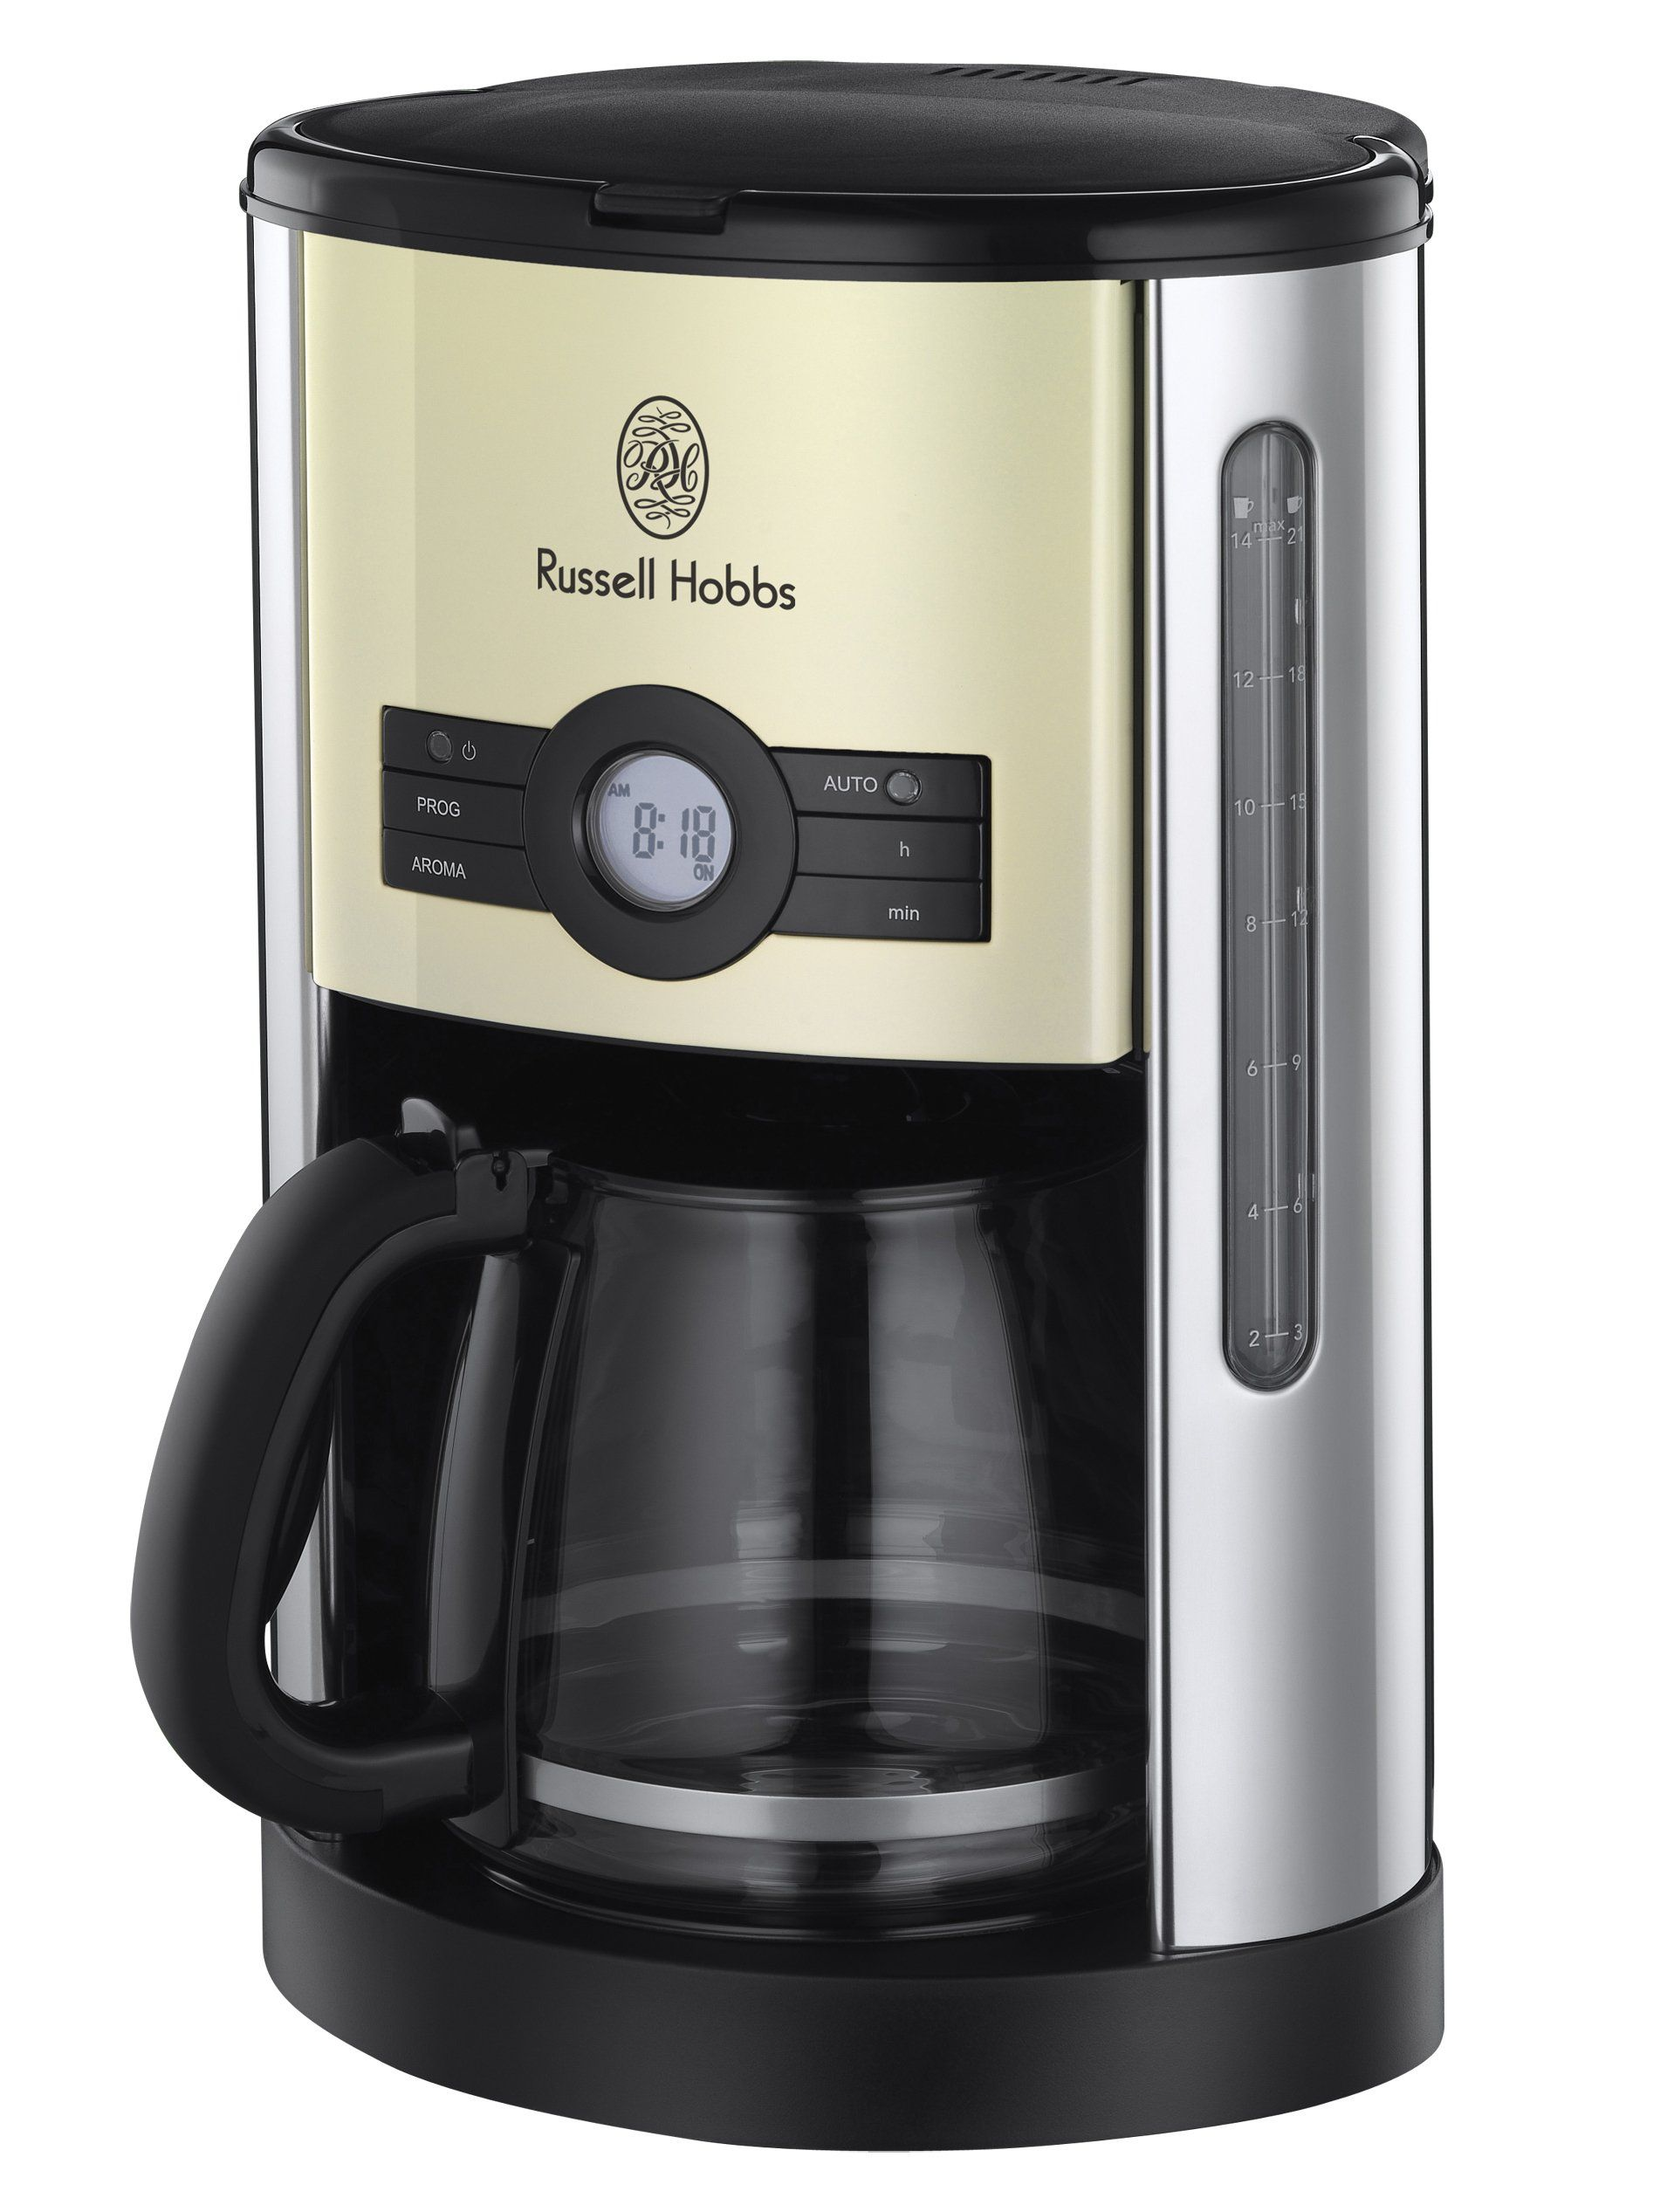 Russell Hobbs 18498 Heritage Coffee Maker Country cream